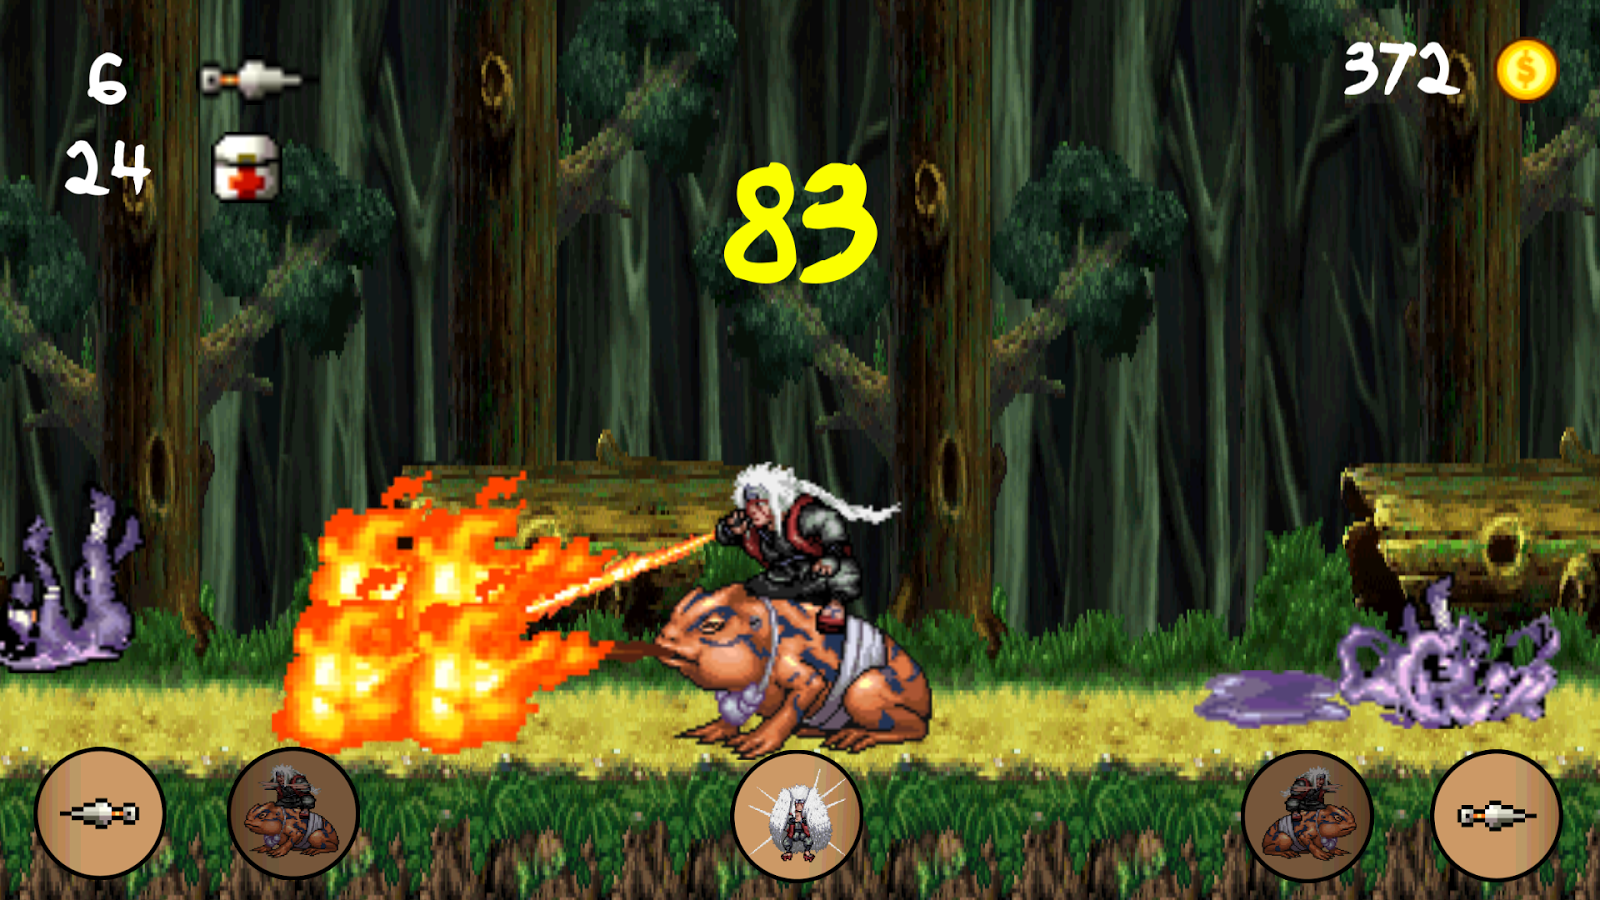 Battle of Ninja Screenshot 4